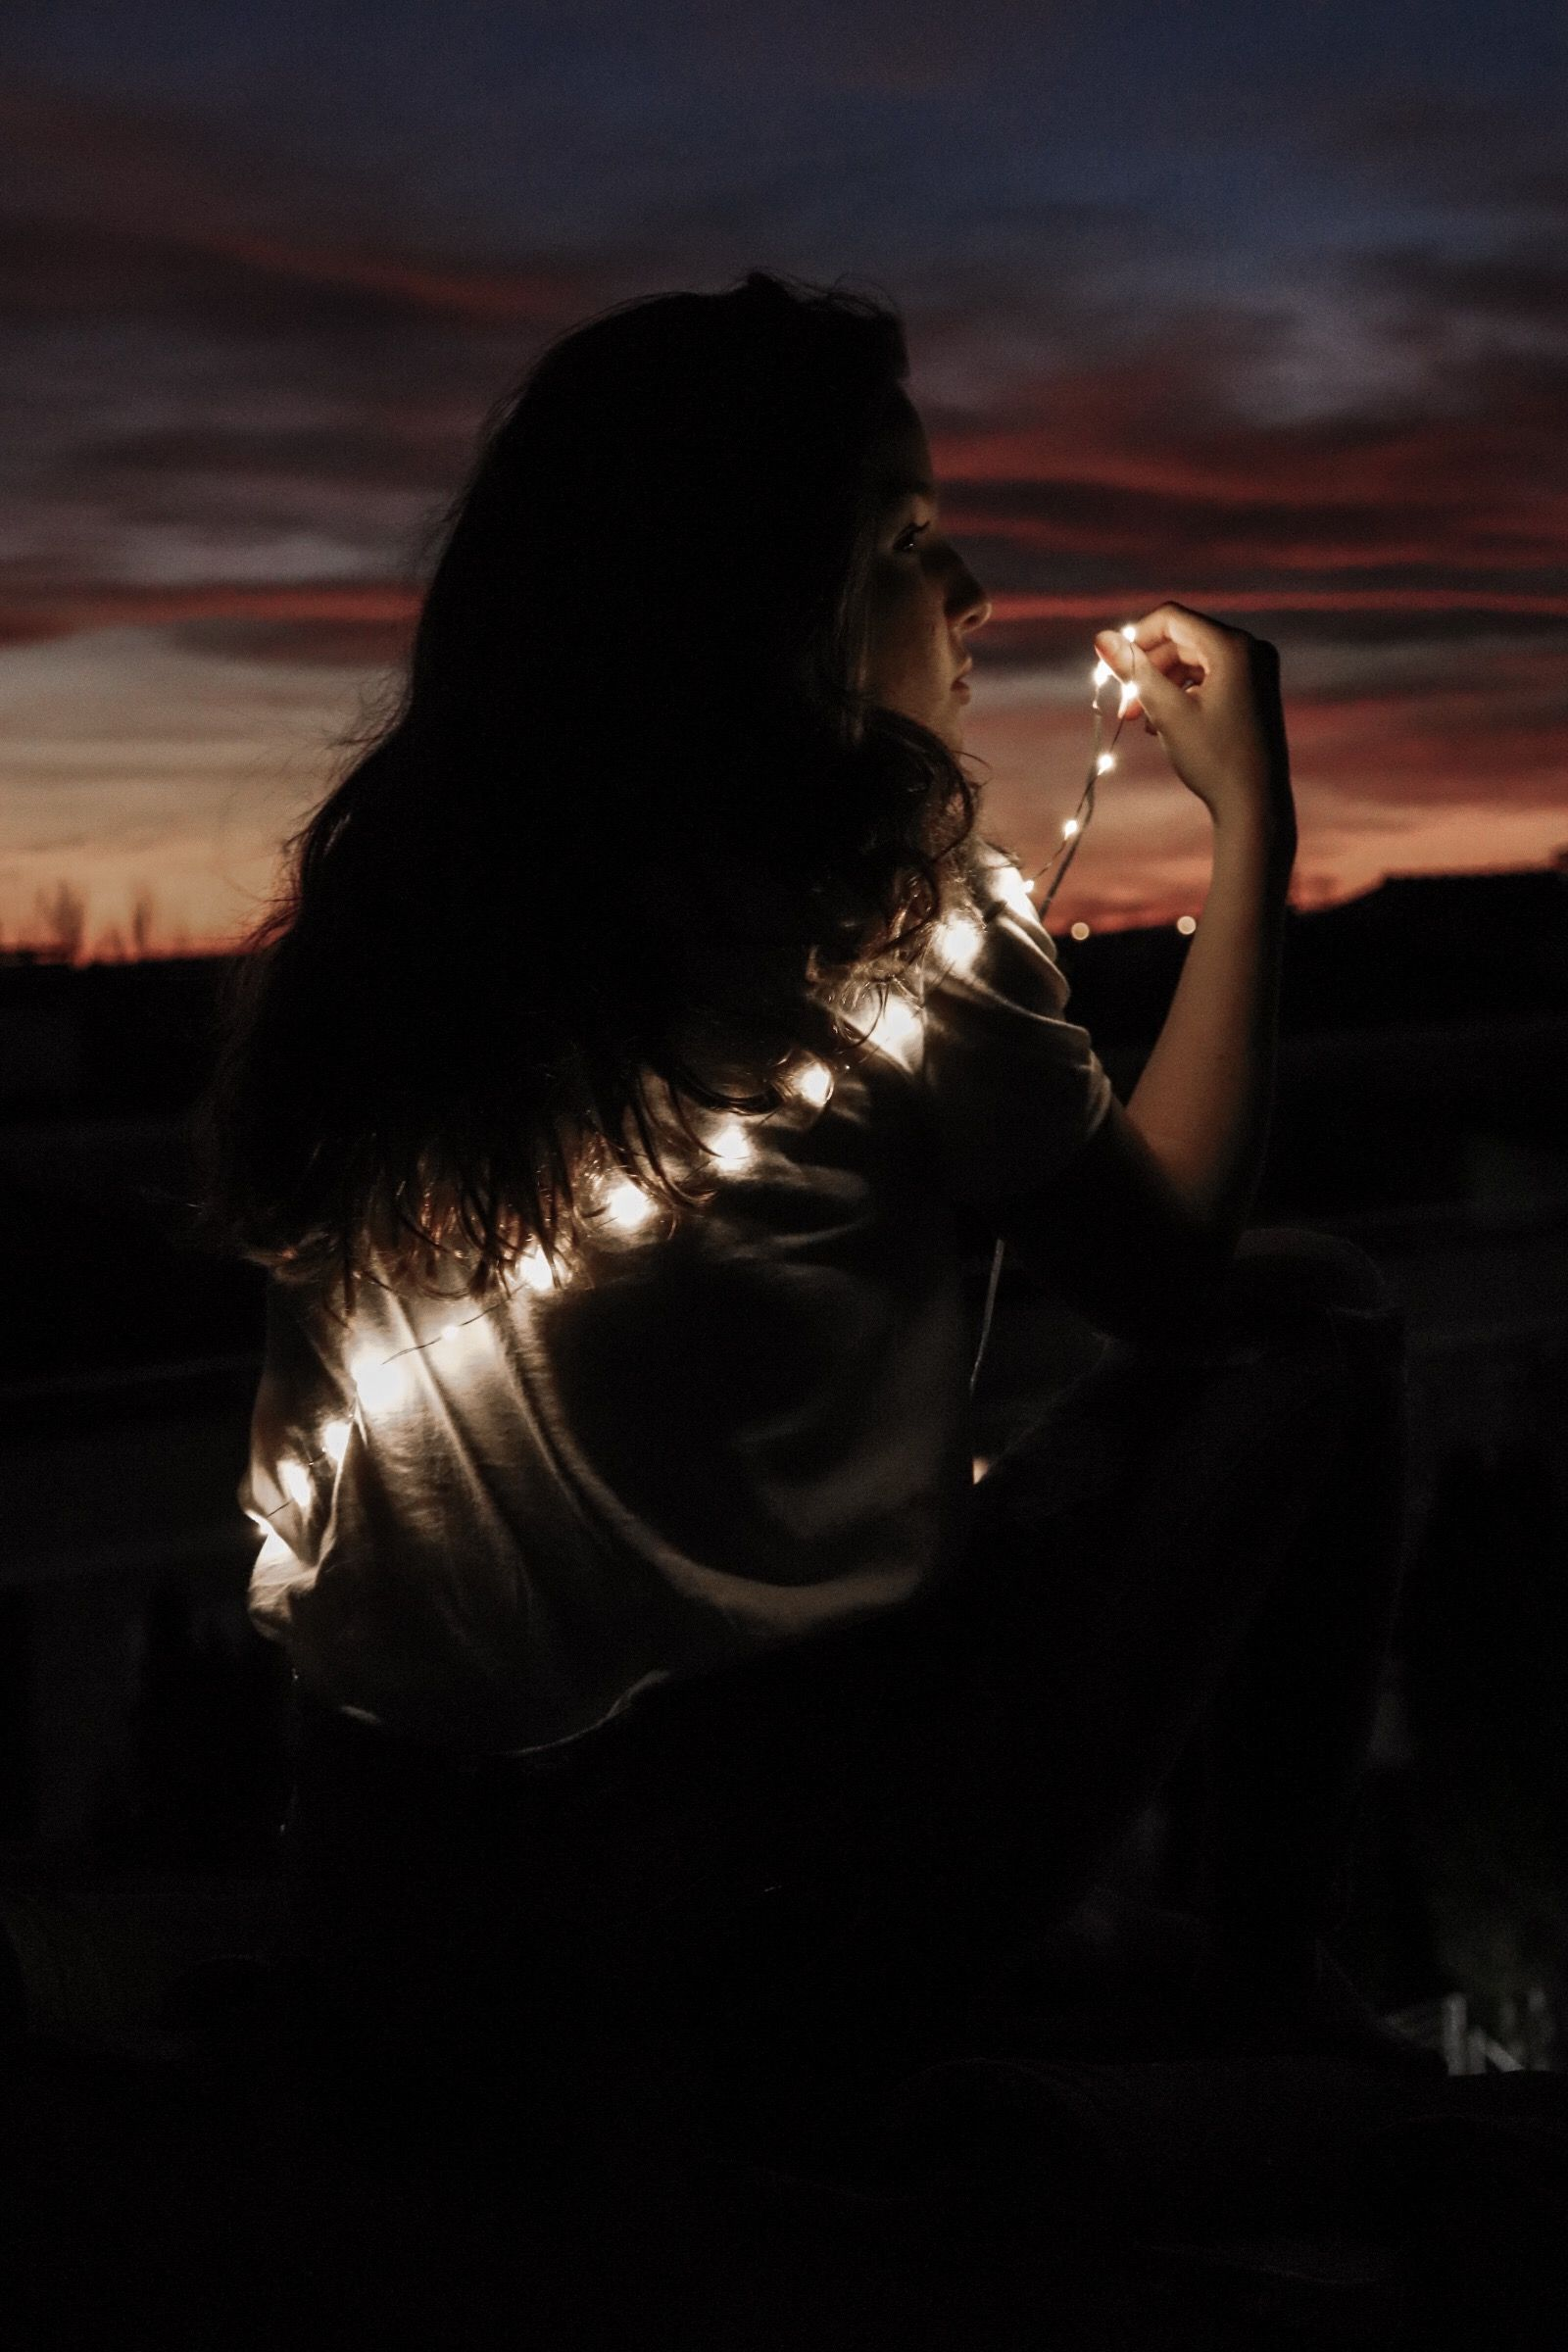 Christmas lights tumblr girl | Photography | Pinterest for Night Light Tumblr  568zmd